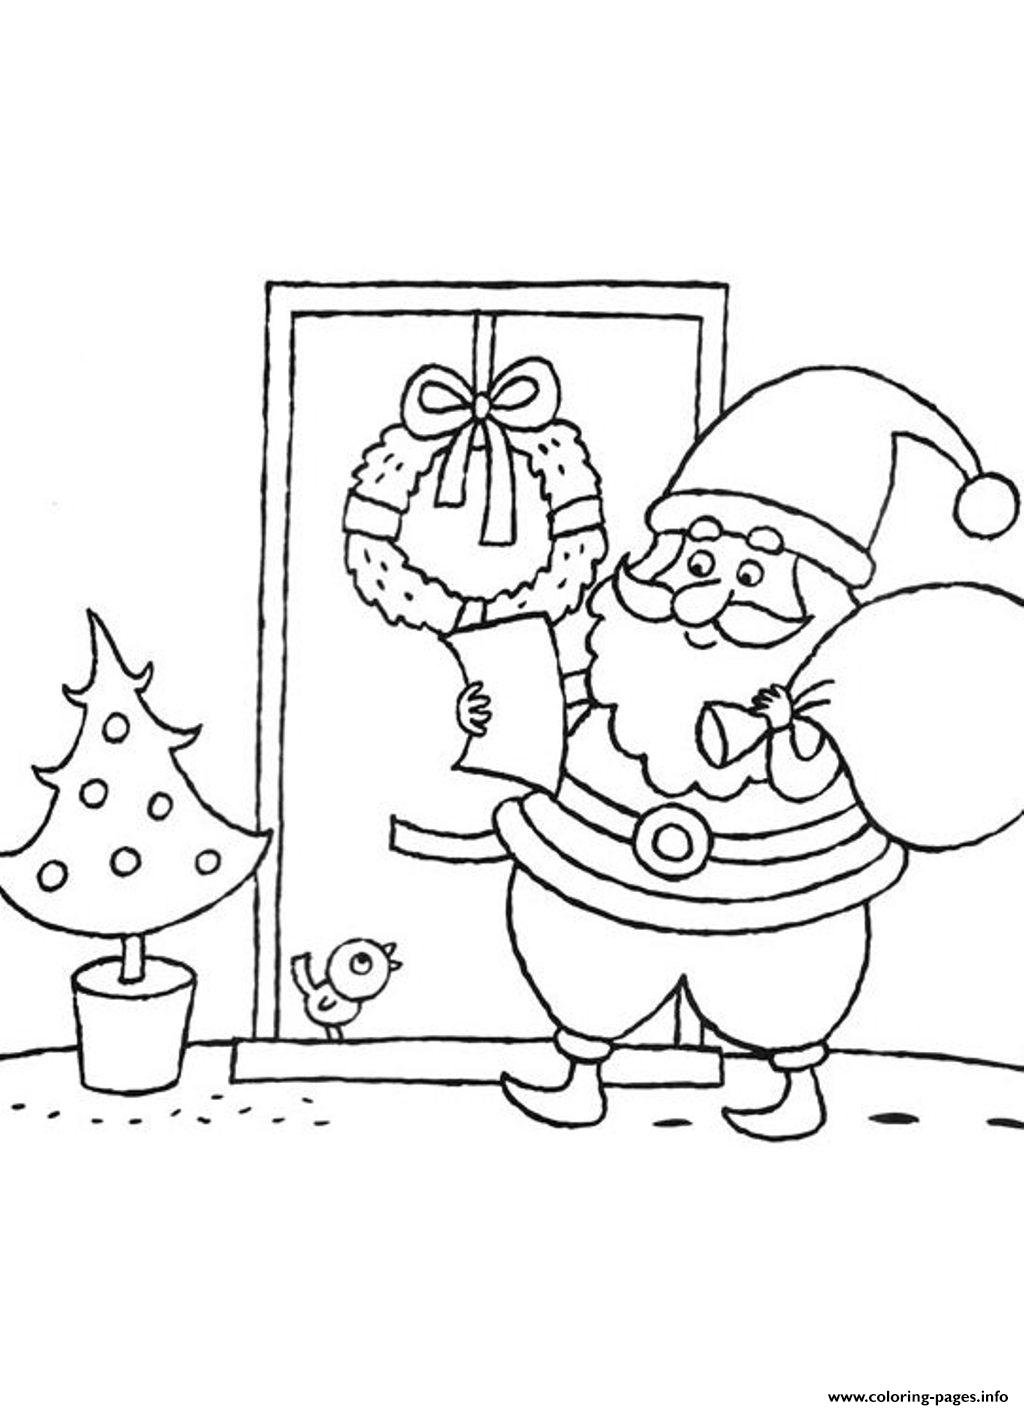 Read A List Santa Claus S84c0 coloring pages